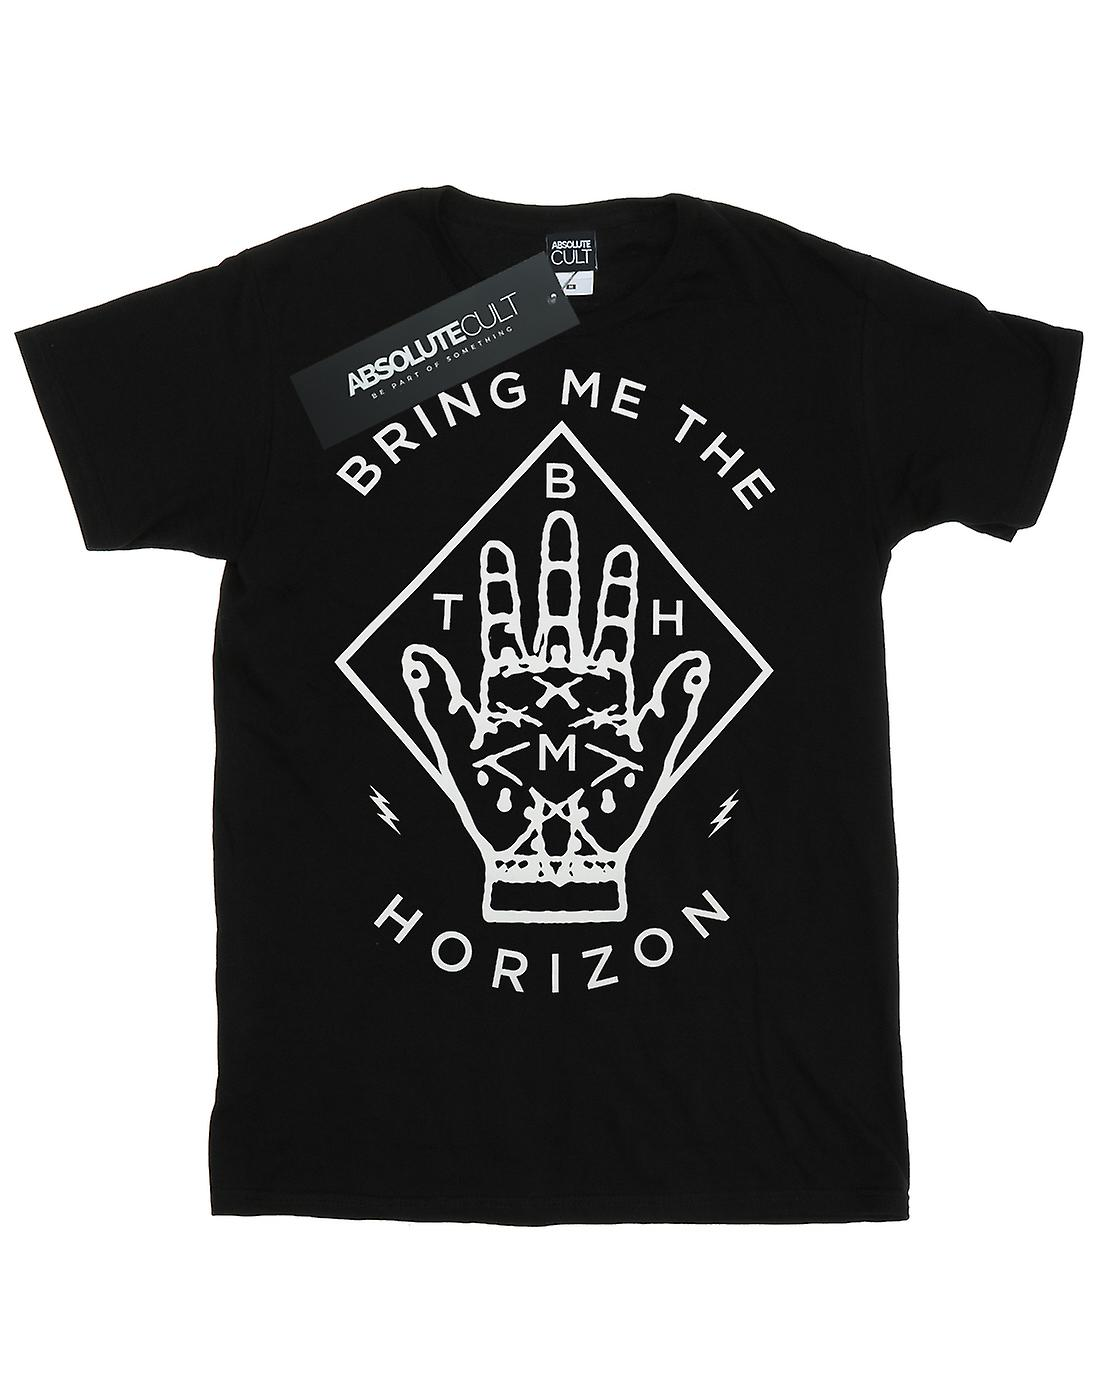 Bring Me The Horizon Women's Diamond Hand Boyfriend Fit T-Shirt